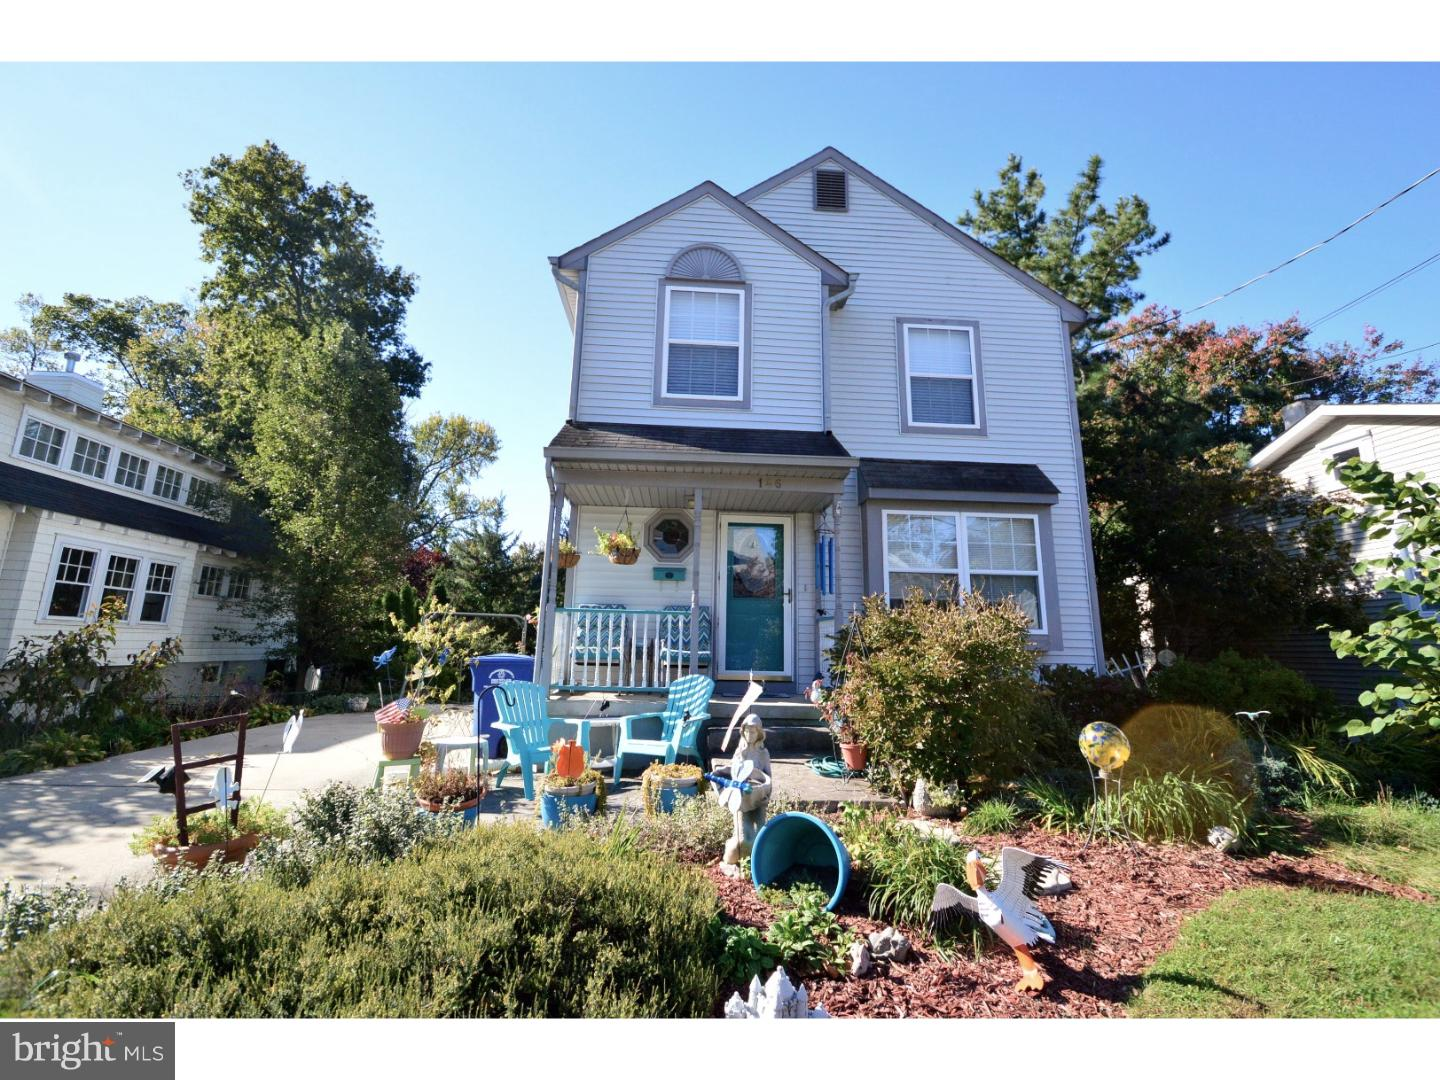 Single Family Home for Sale at 146 S POPLAR Avenue Maple Shade, New Jersey 08052 United StatesMunicipality: Maple Shade